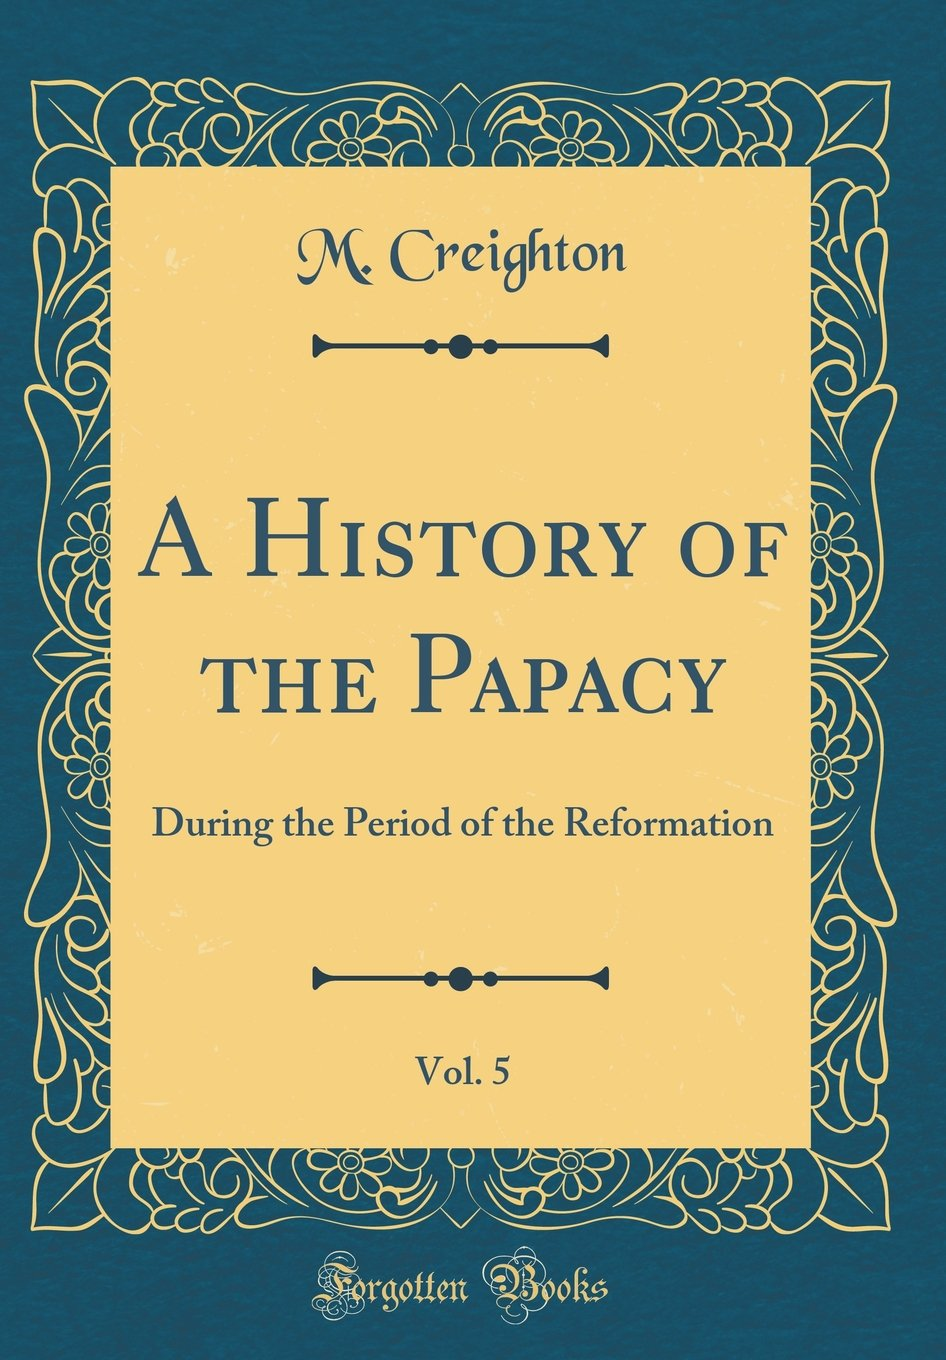 A History of the Papacy, Vol. 5: During the Period of the Reformation (Classic Reprint) ebook